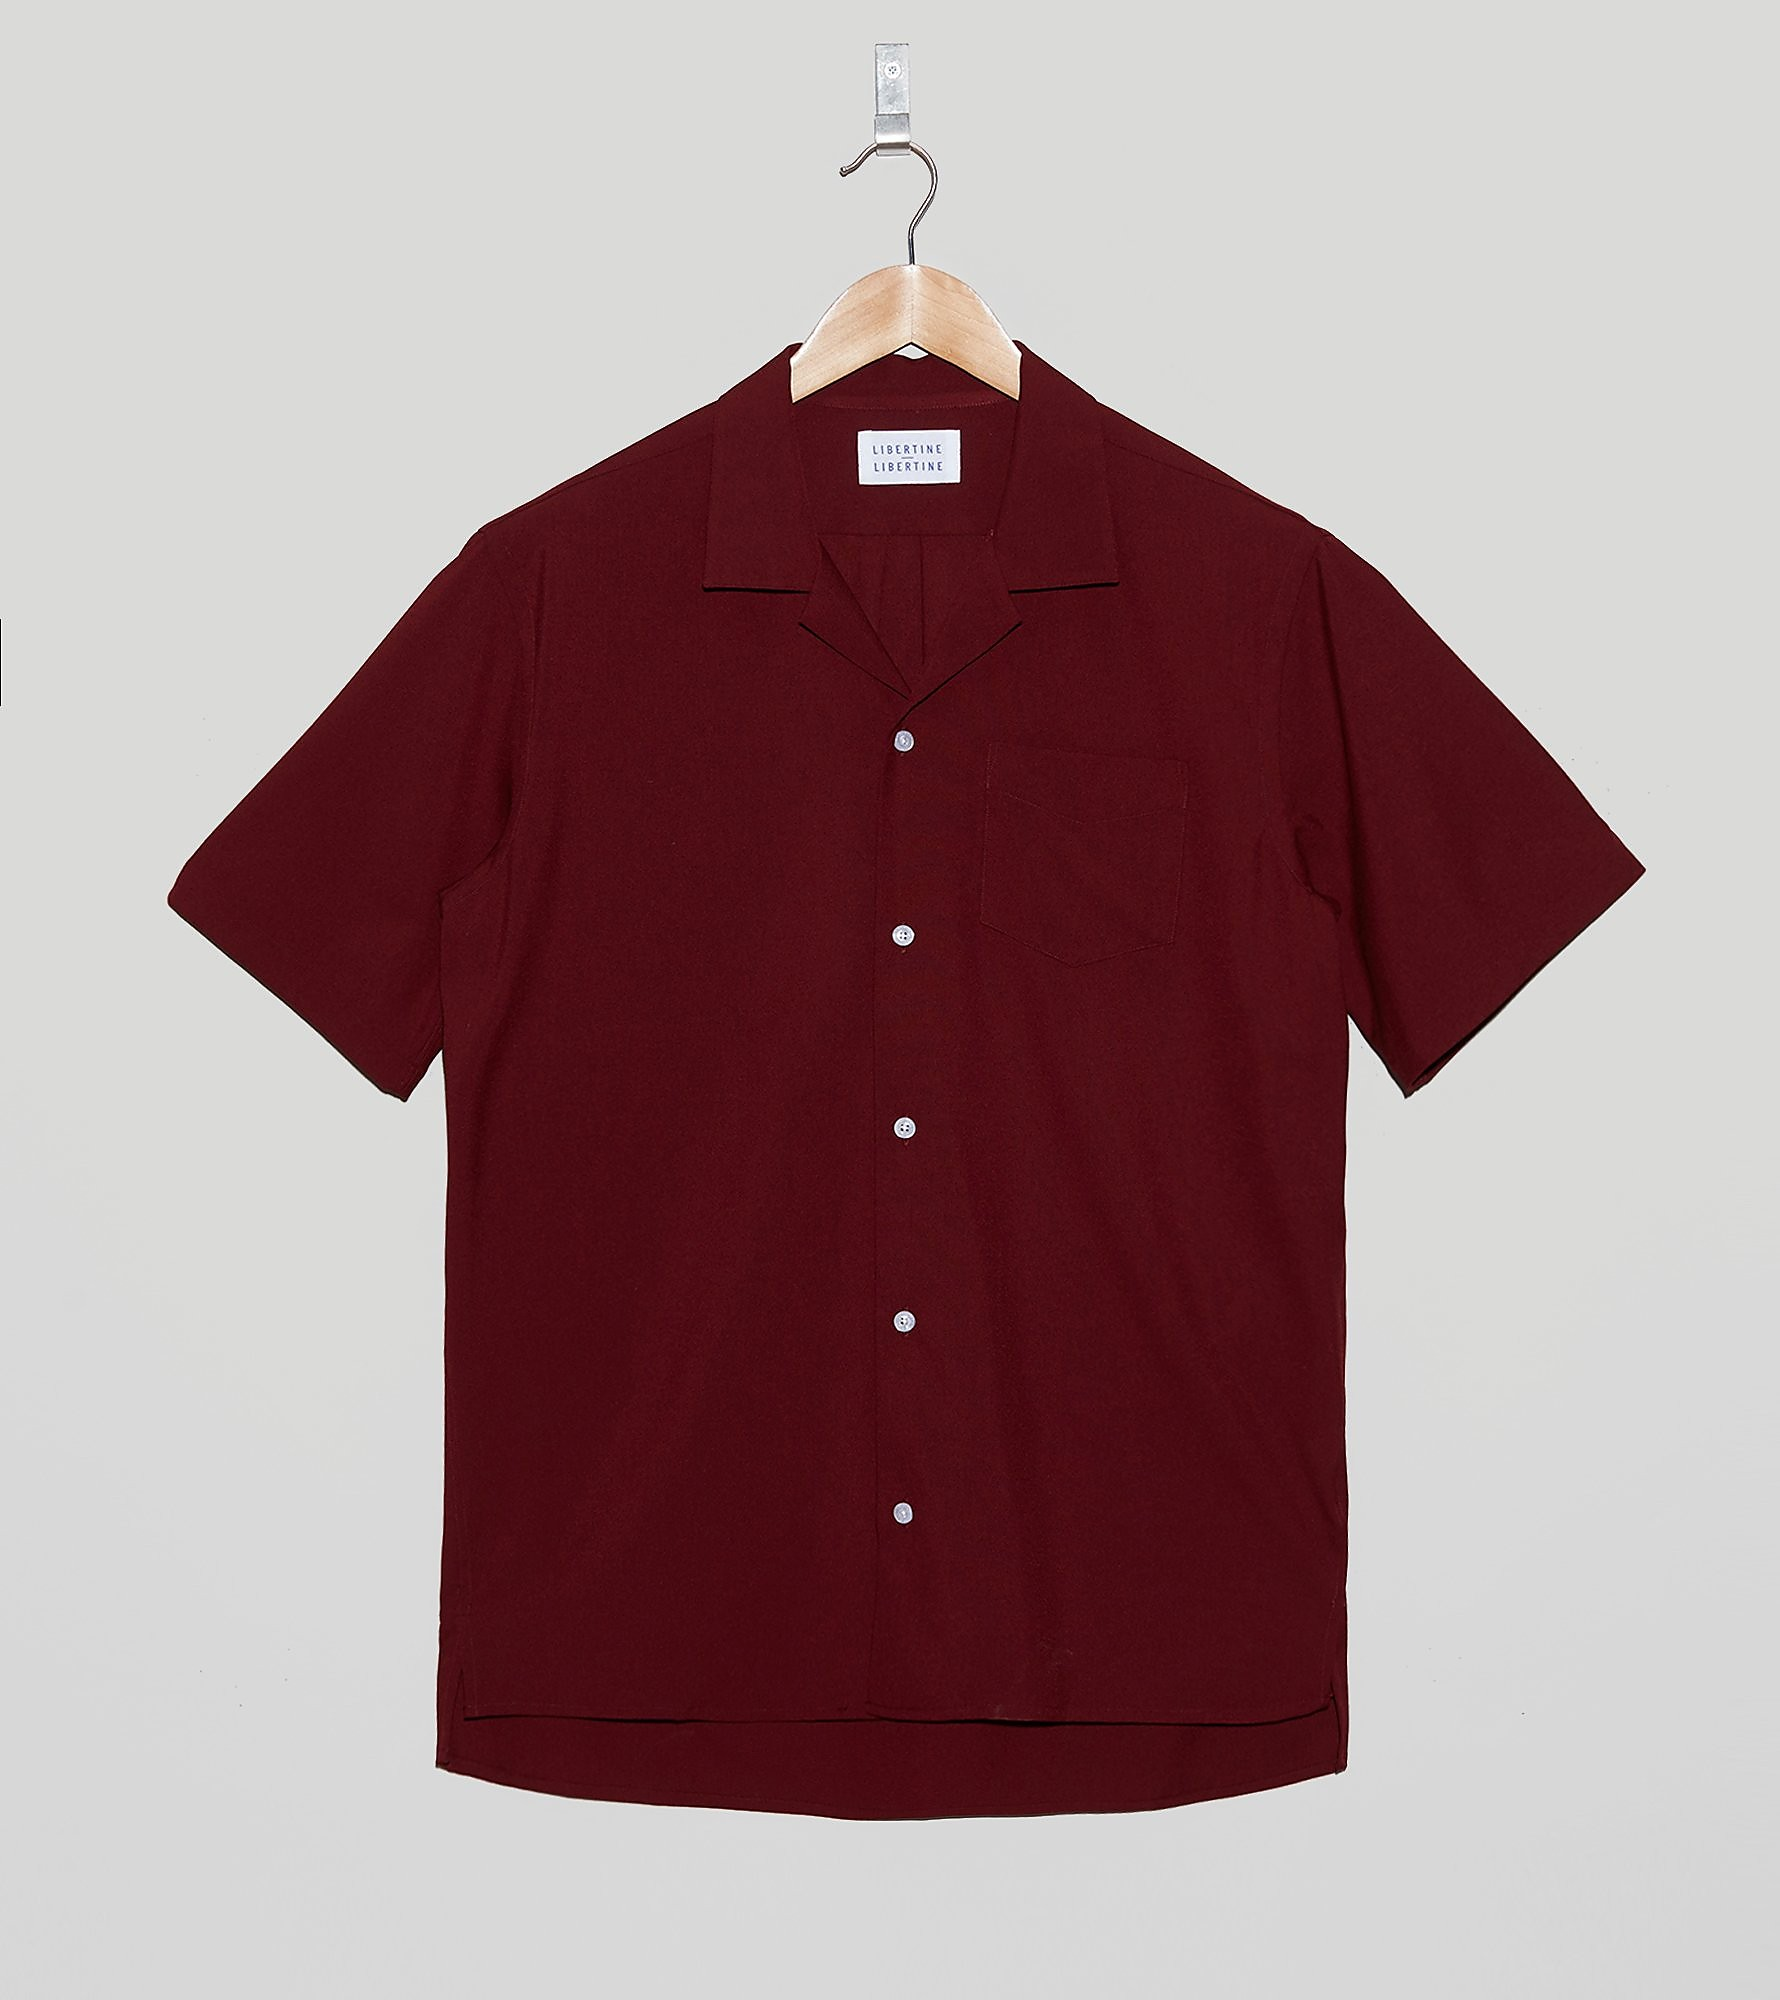 LIBERTINE-LIBERTINE Cave Short-Sleeved Shirt